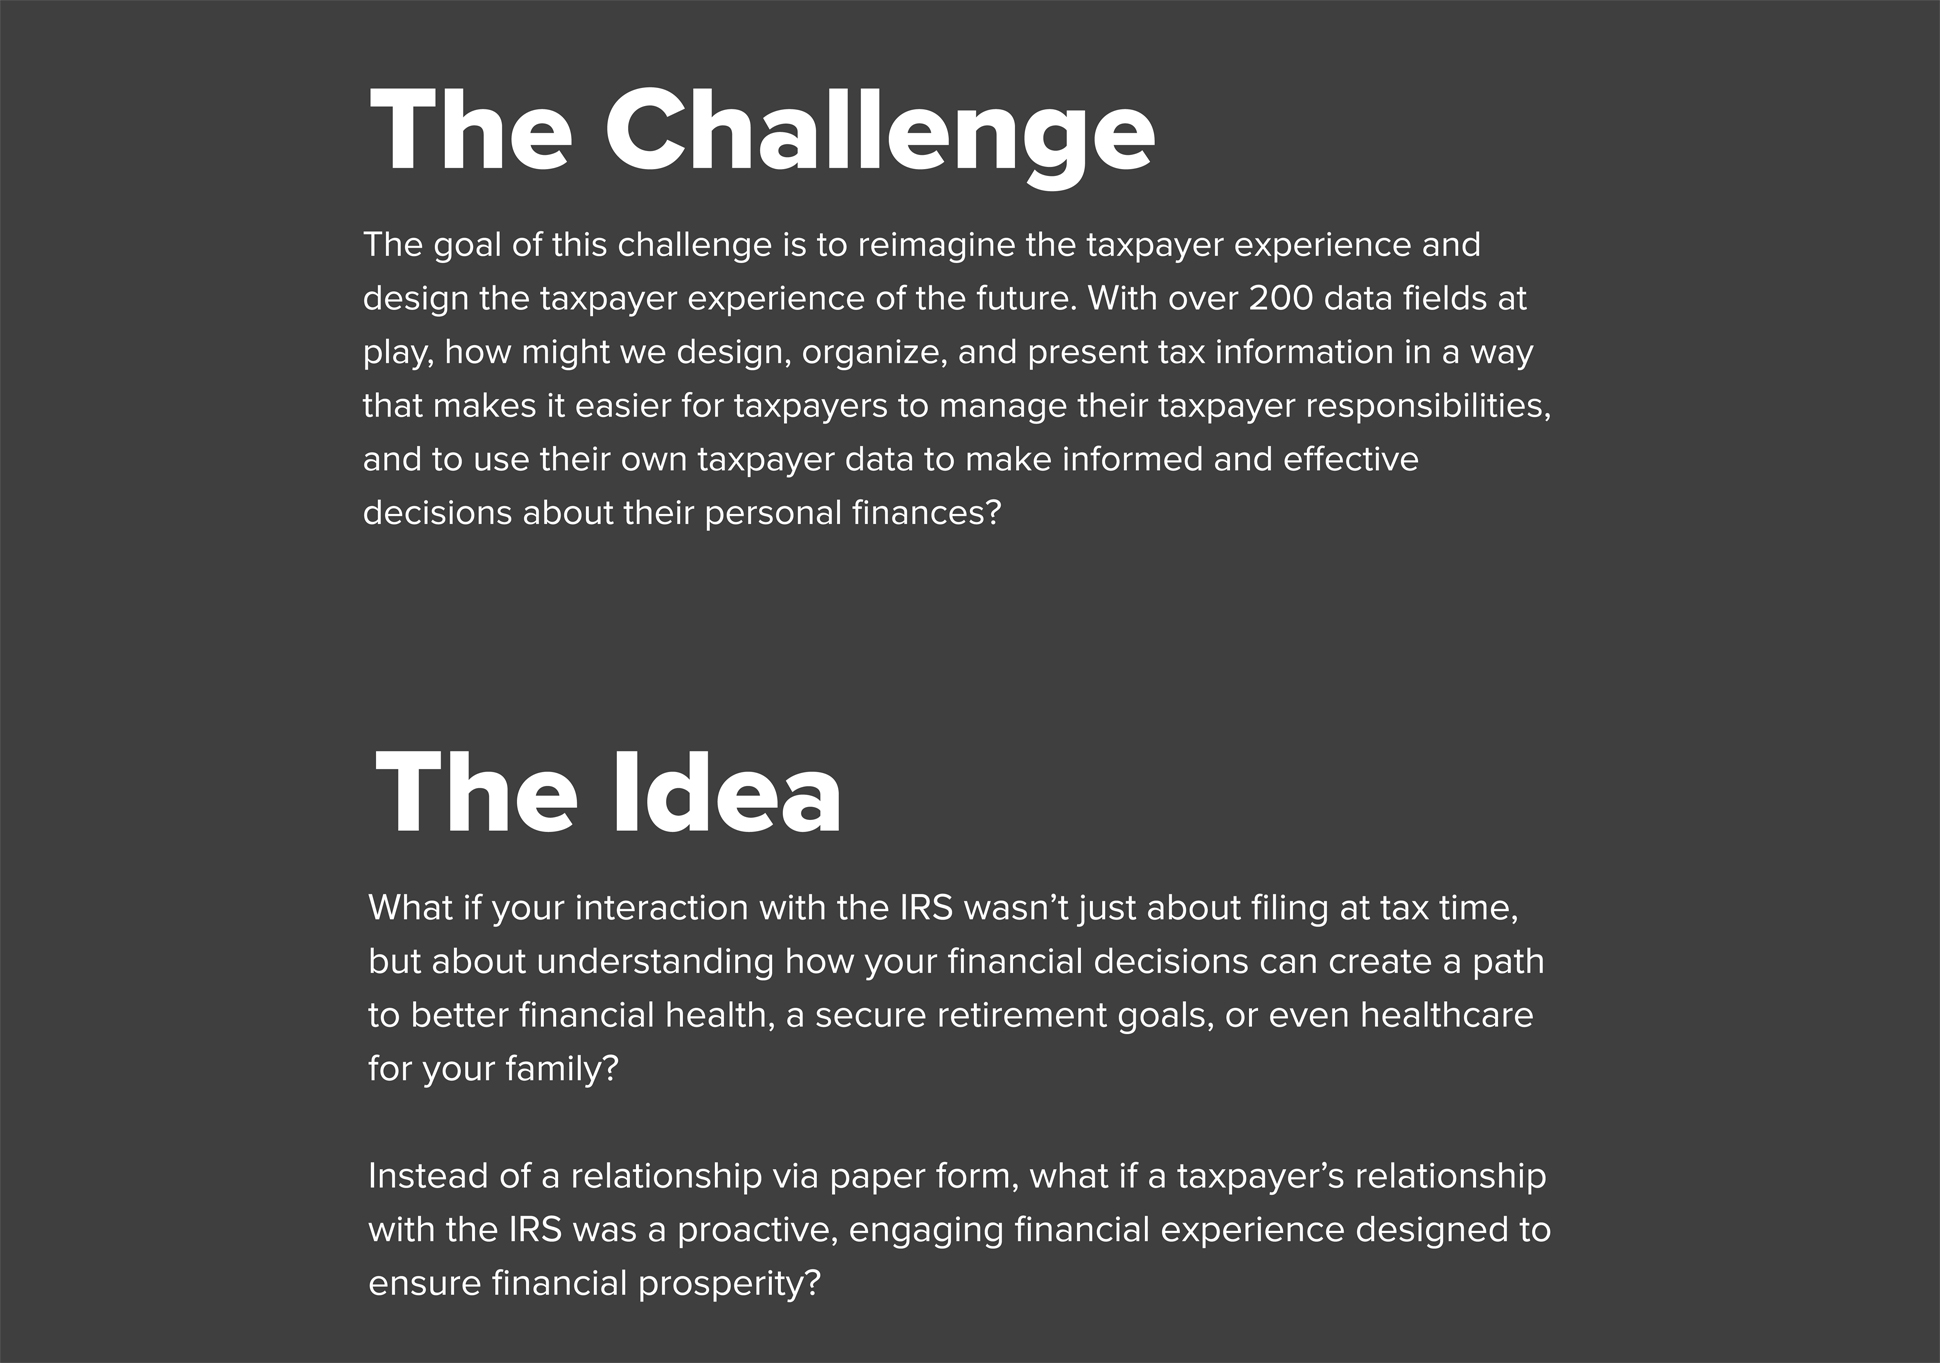 A page from a tax design challenge submission. A summary of the Tax Design Challenge is detailed and the initial submitter's idea.